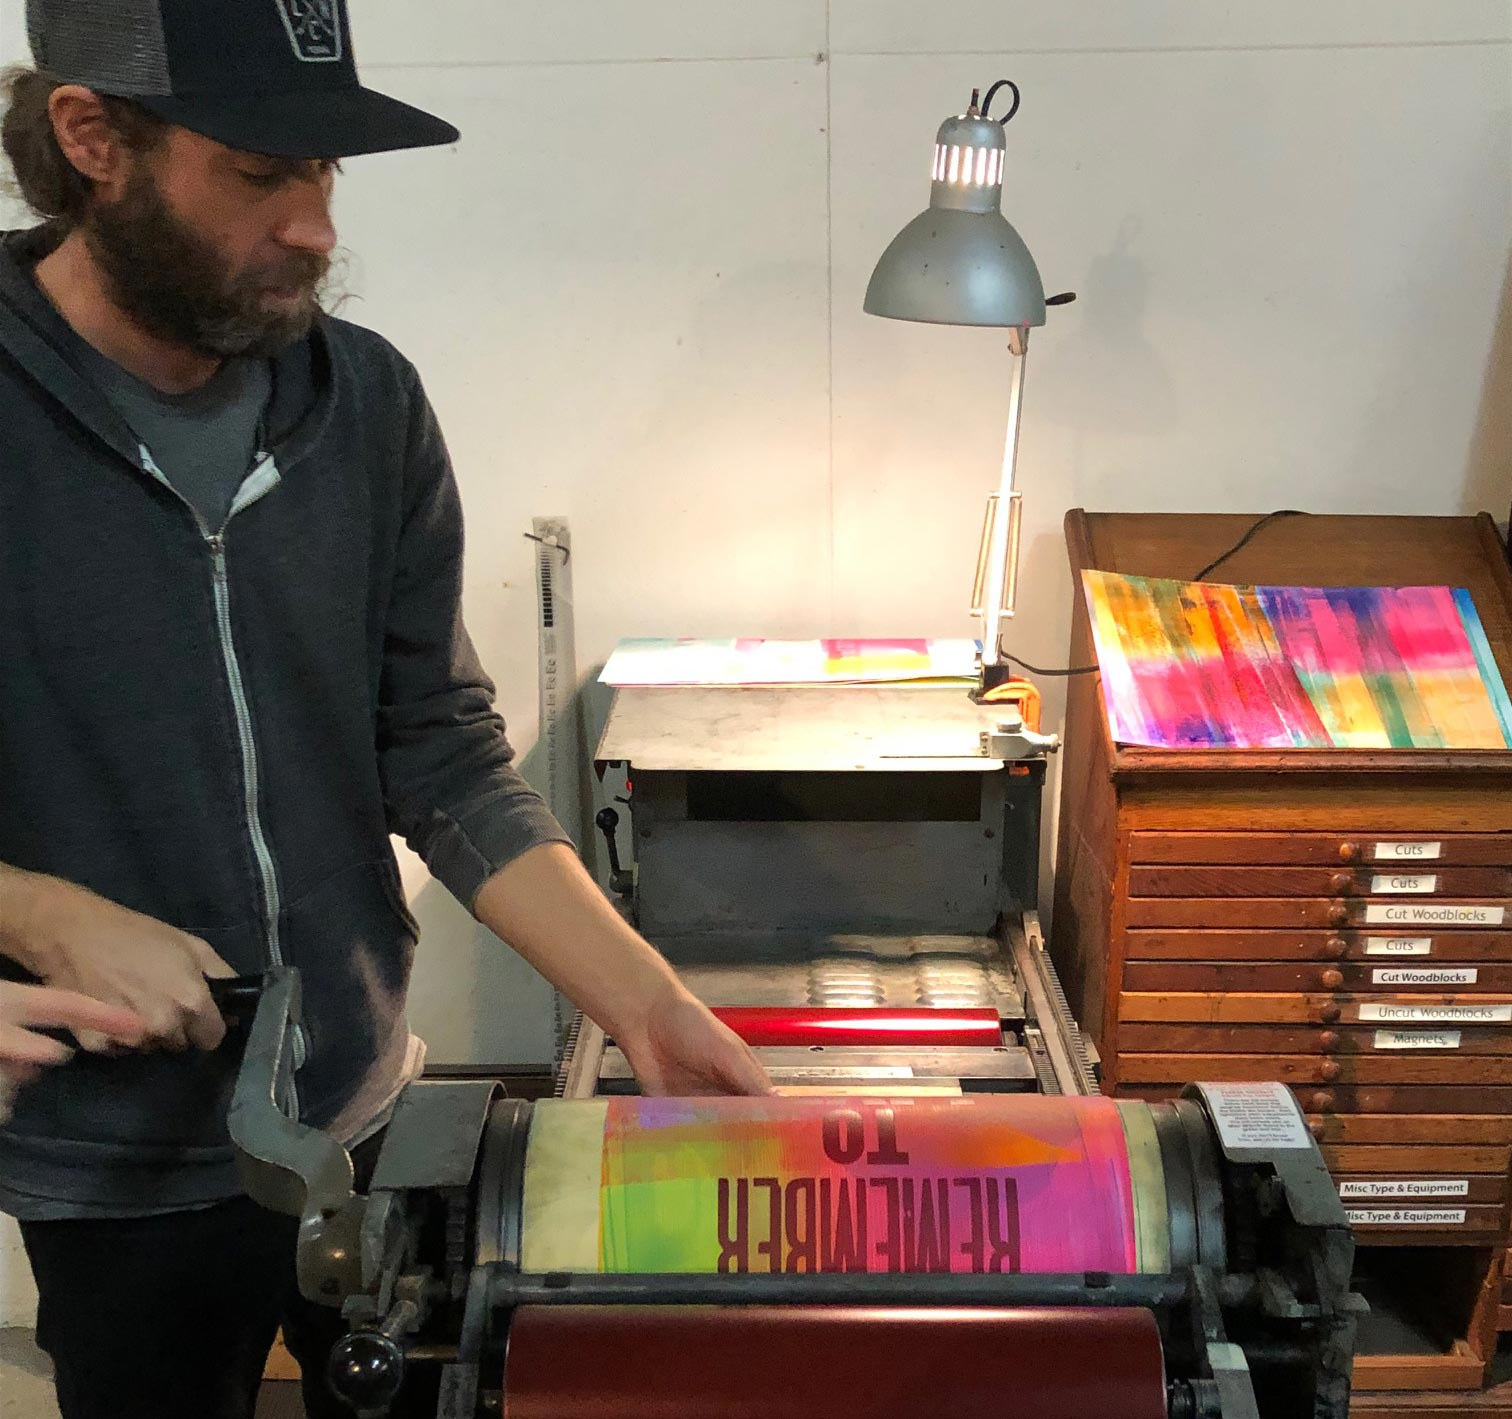 Chris Fritton   is the former Studio Director of the Western New York Book Arts Center. A poet, printer, and fine artist, Fritton has over a decade of experience writing, printing, and making his own books, in addition to collaborative efforts with other authors and artists.